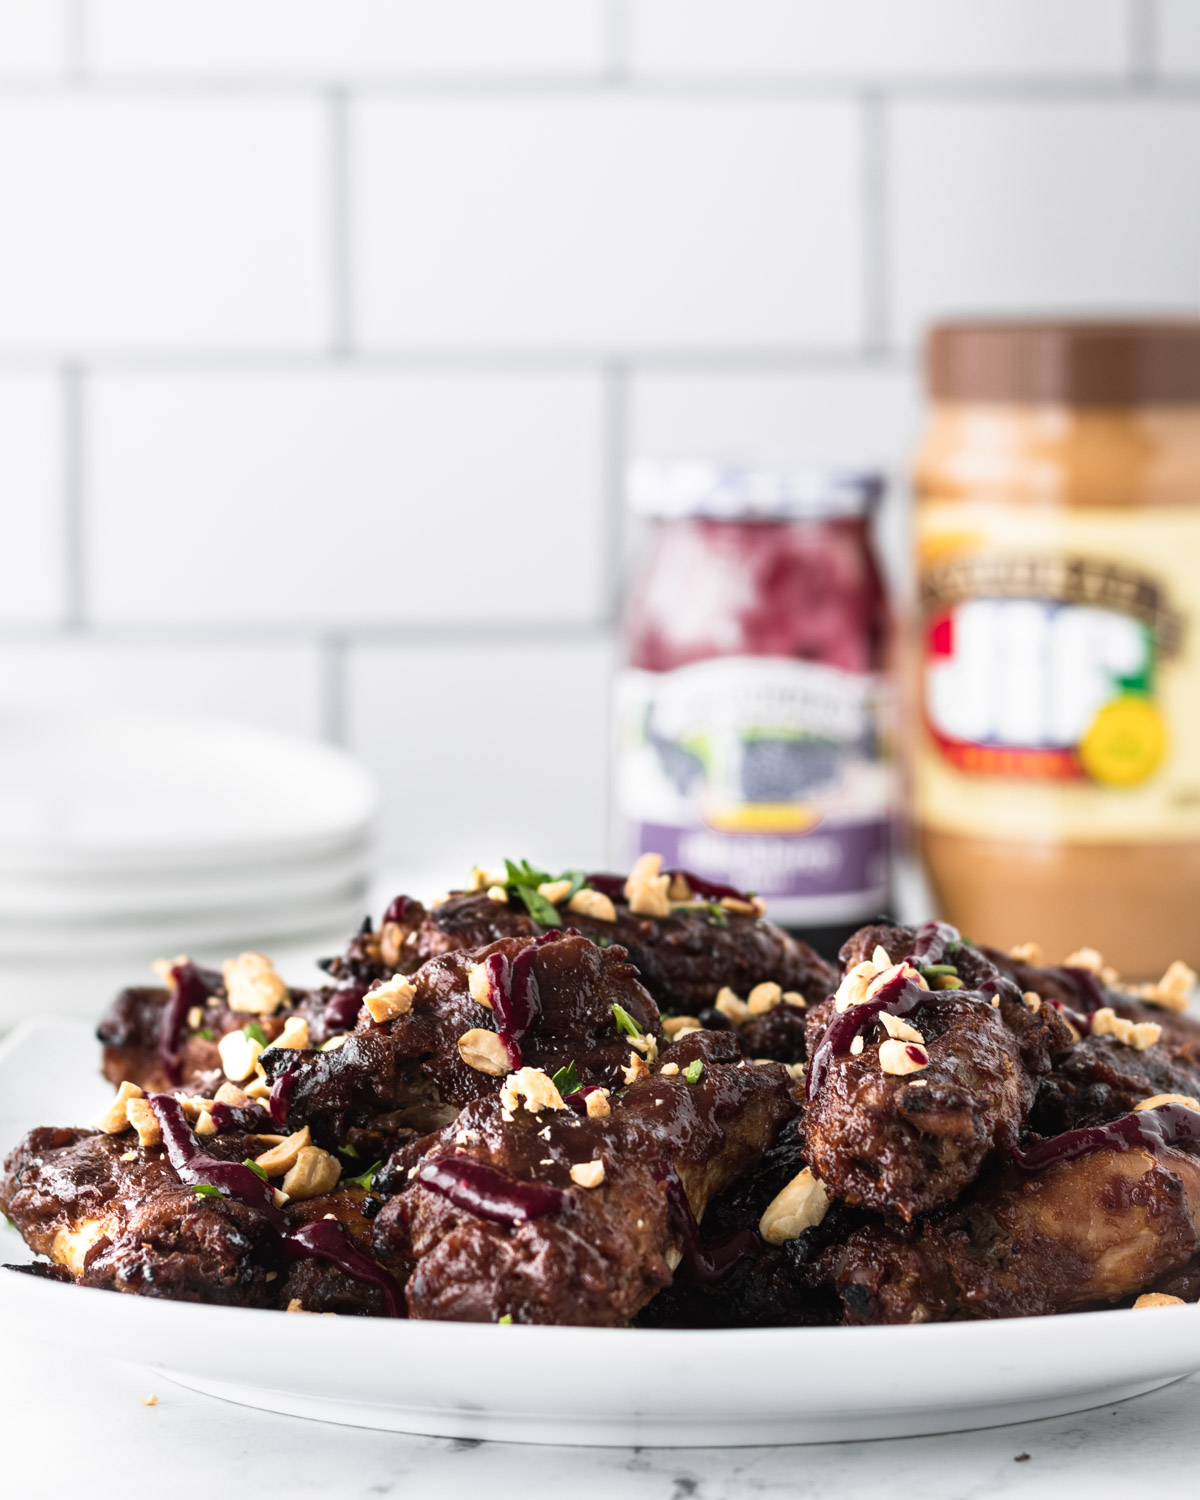 Plate of peanut butter and jelly chicken wings, with a jar of peanut butter and a jar or jelly in the background.